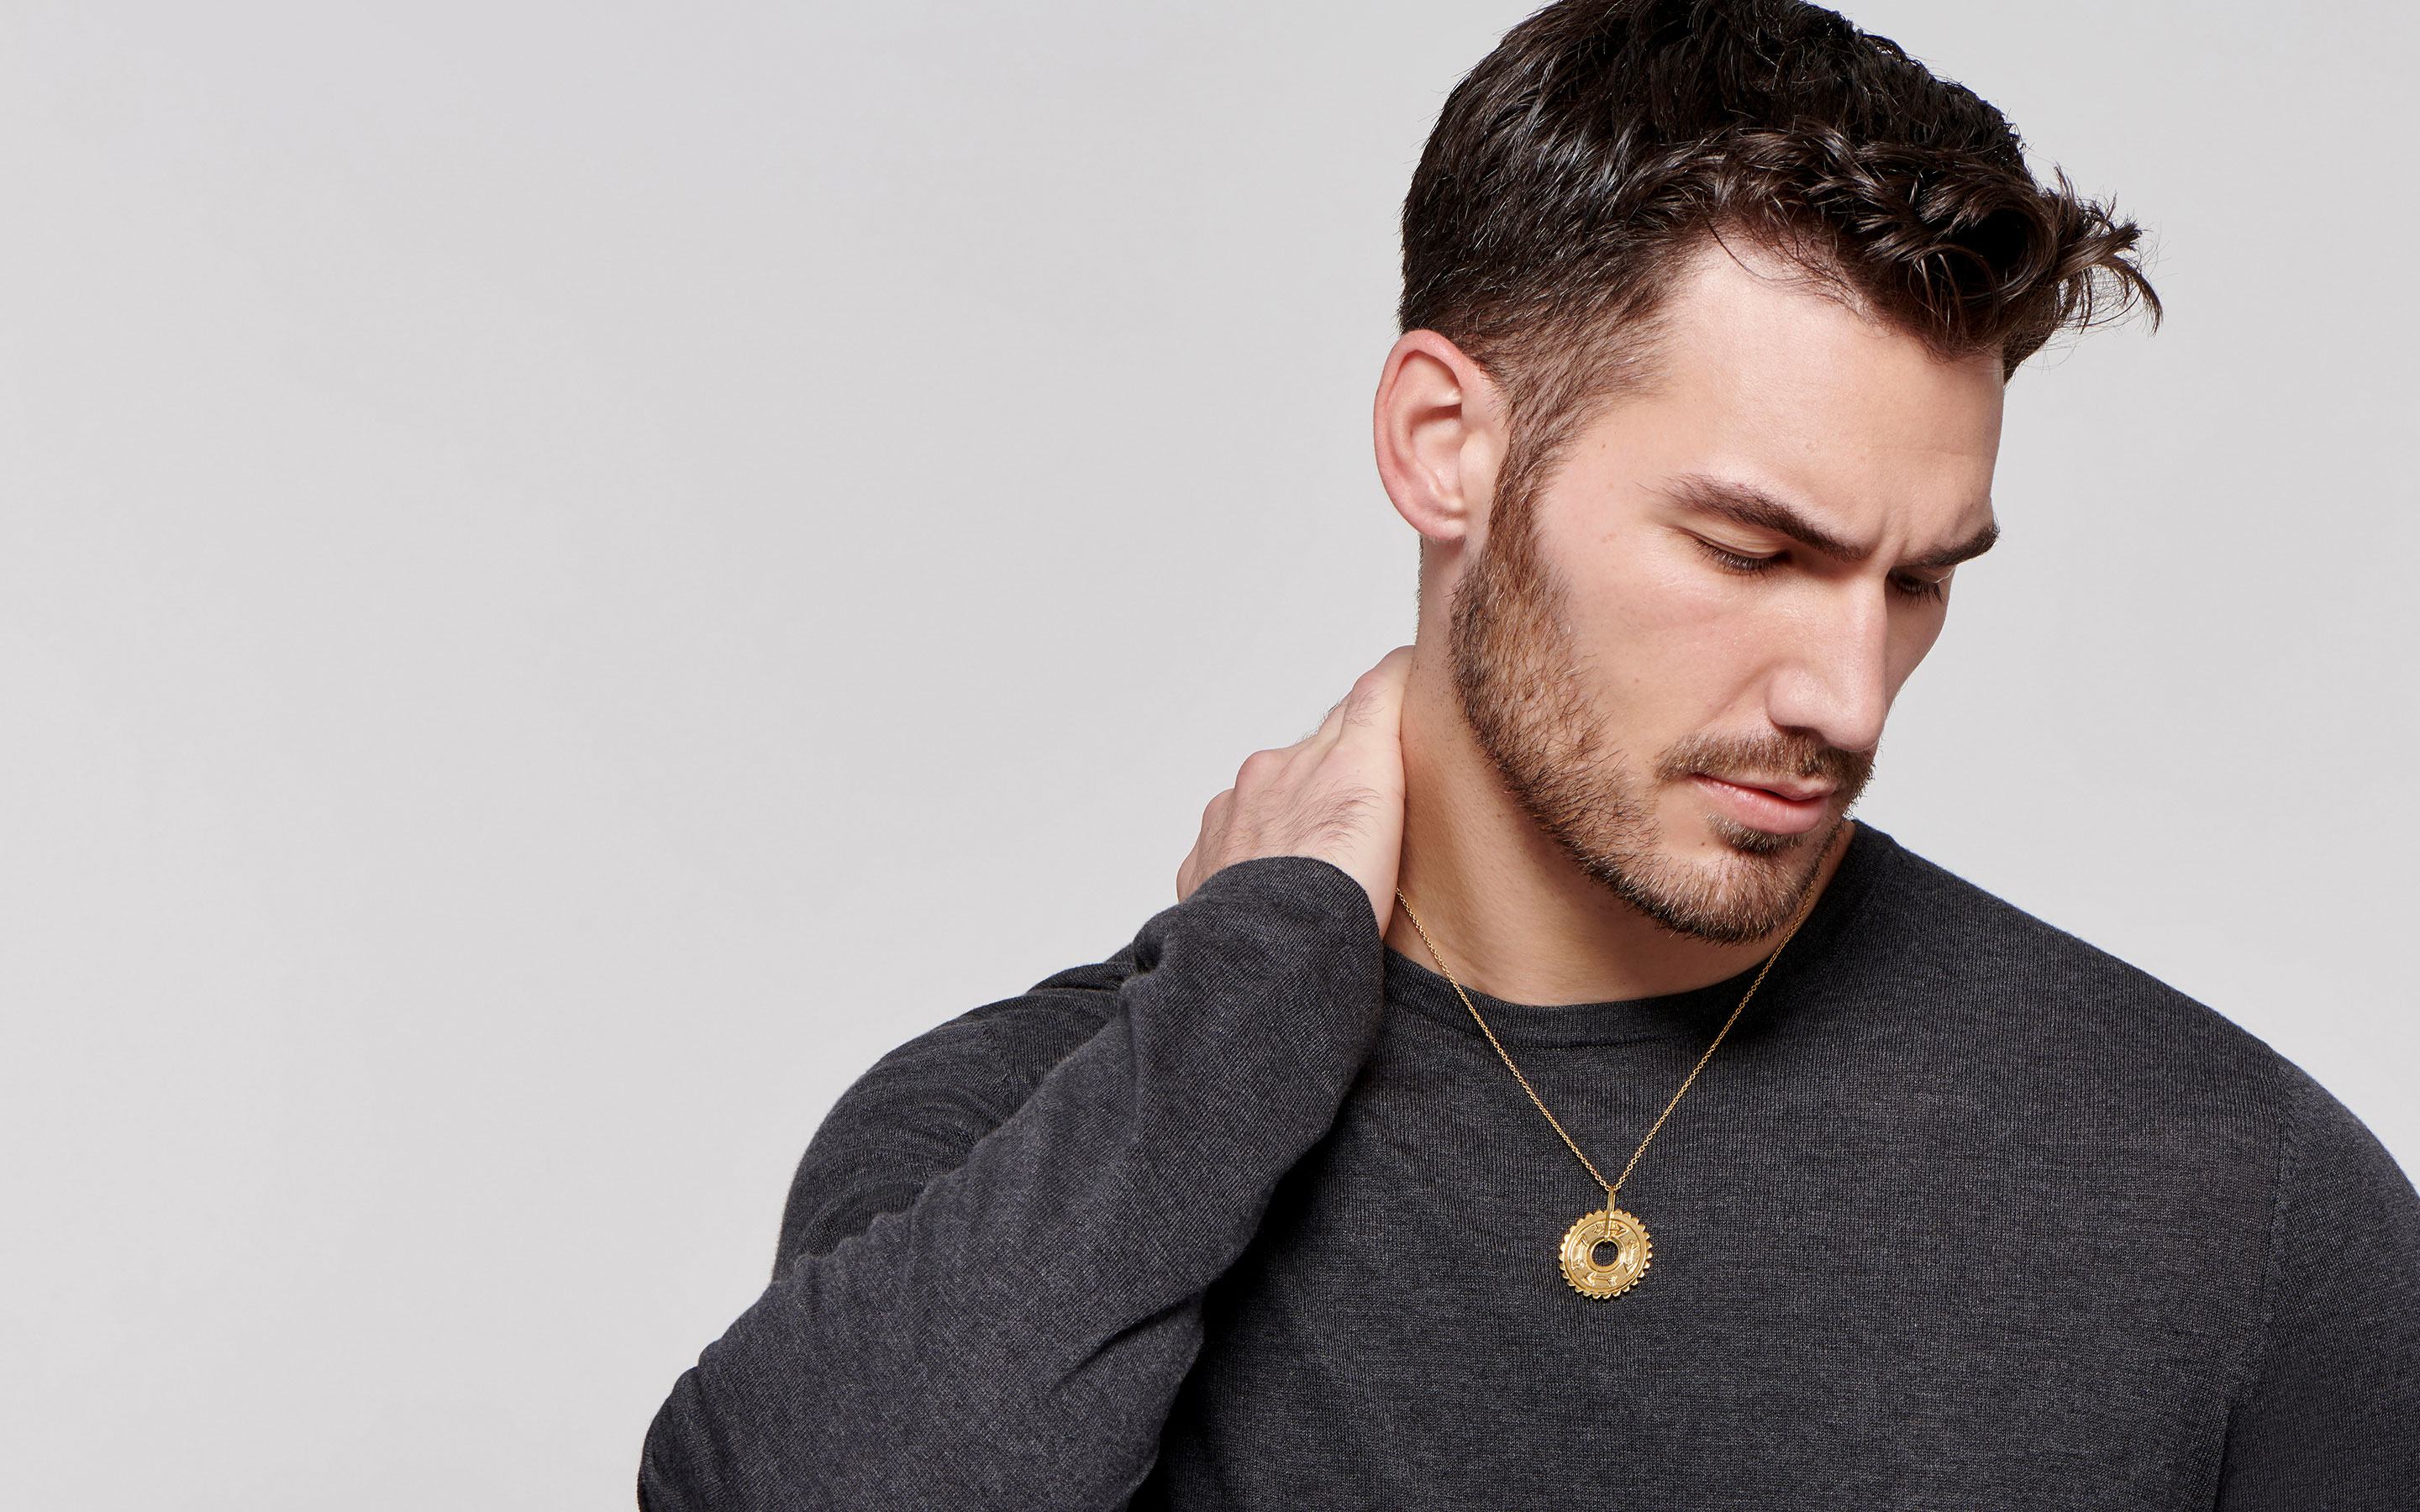 strong male model wearing an artisan crafted 22 karat gold medallion